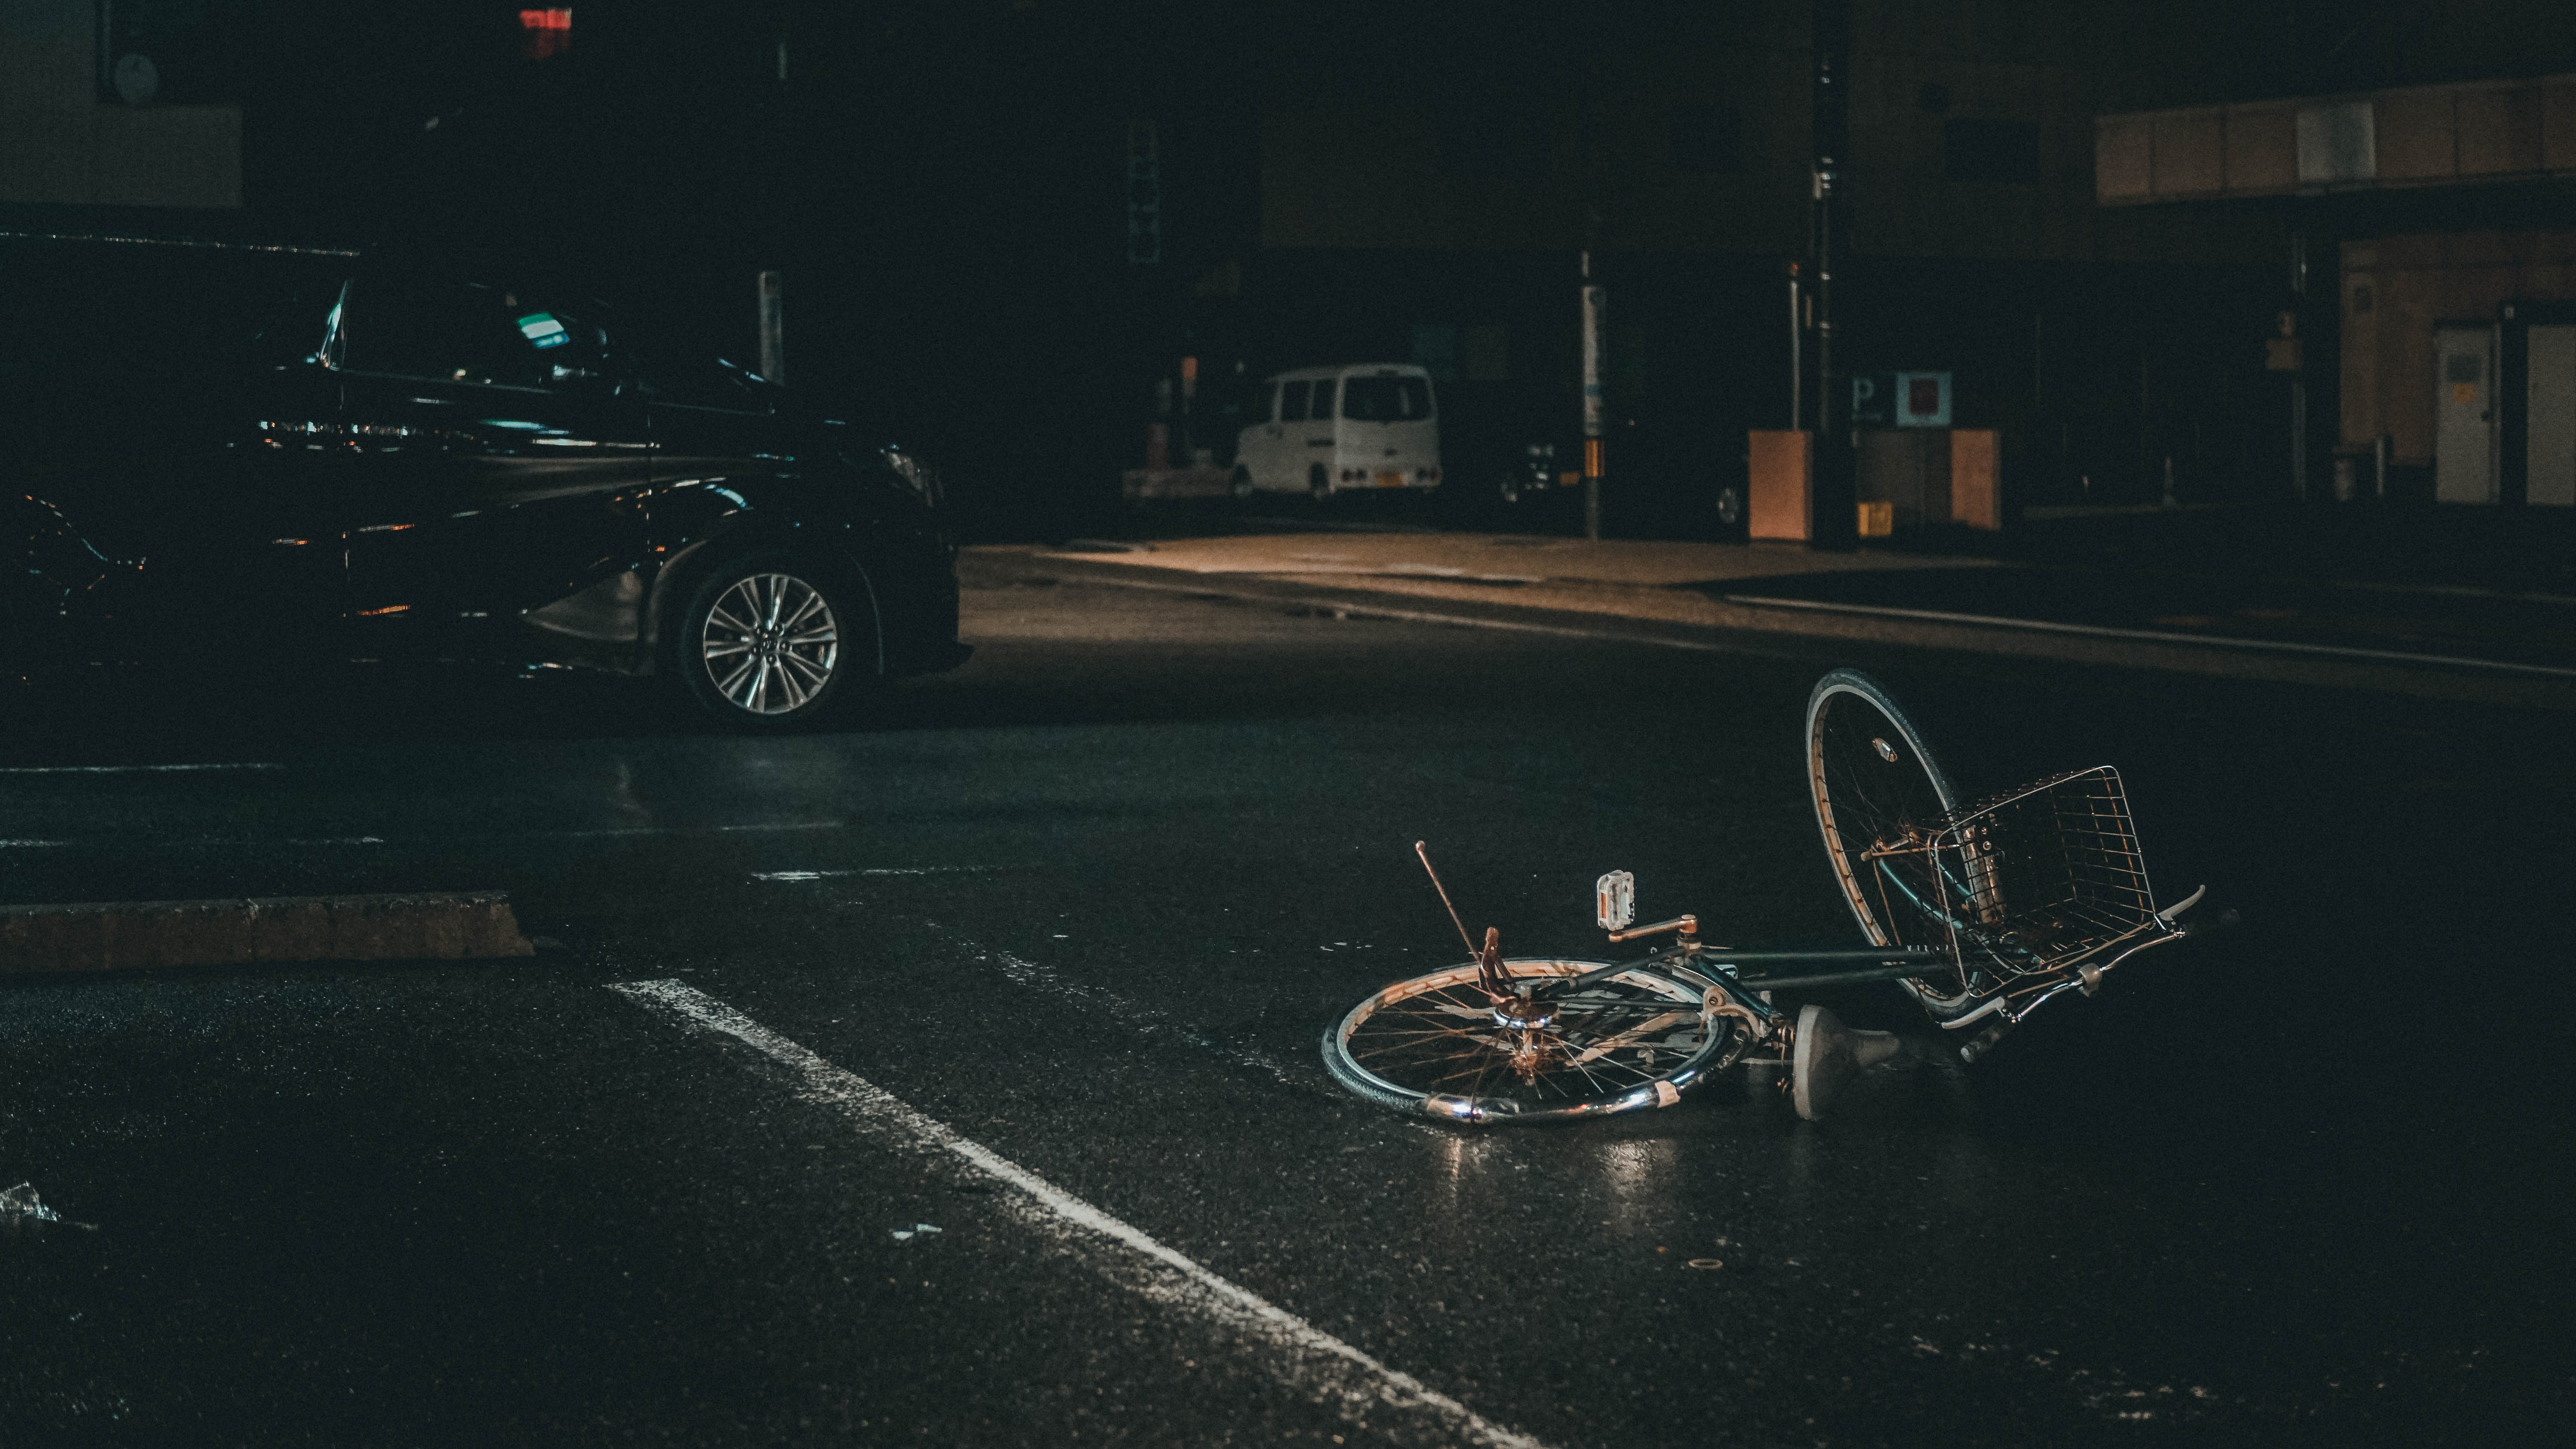 nighttime bicycle accident